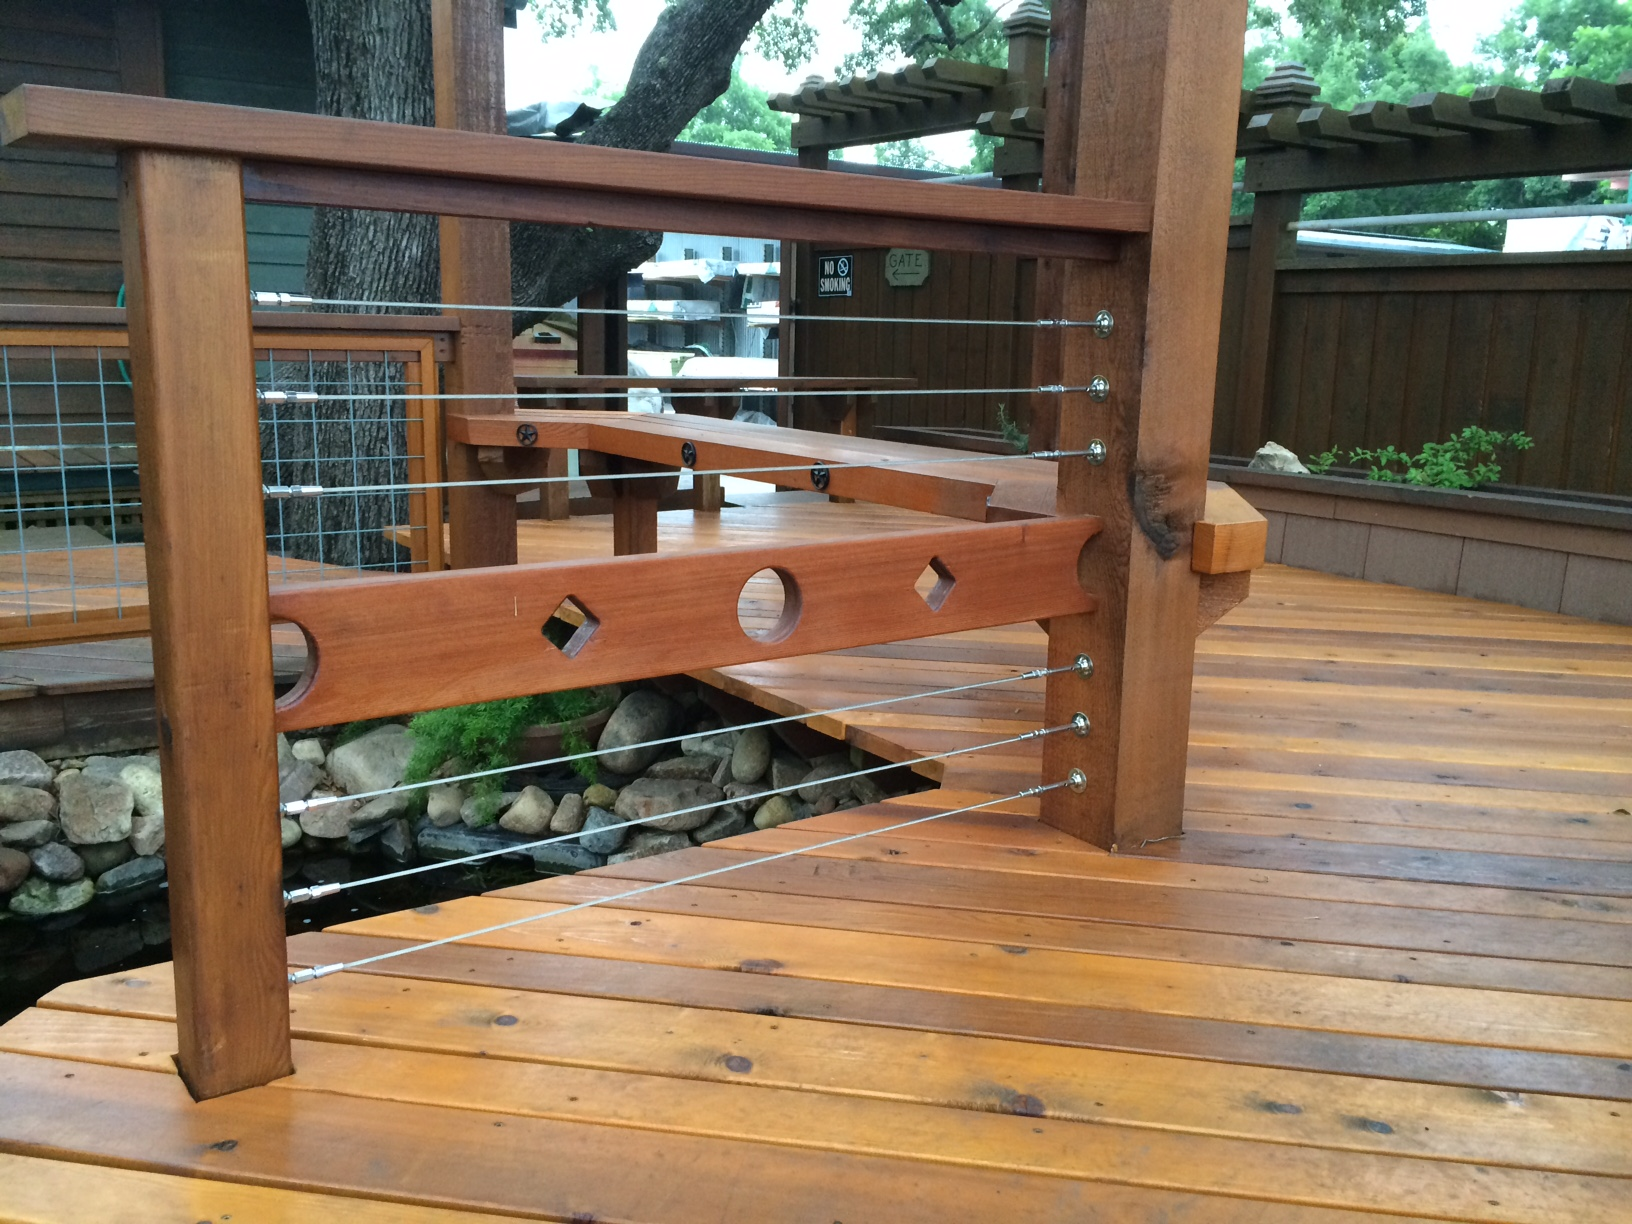 Uncategorized Deck Cable Railing lumber yards san antonio south texas braundera yard hardware deck accessories